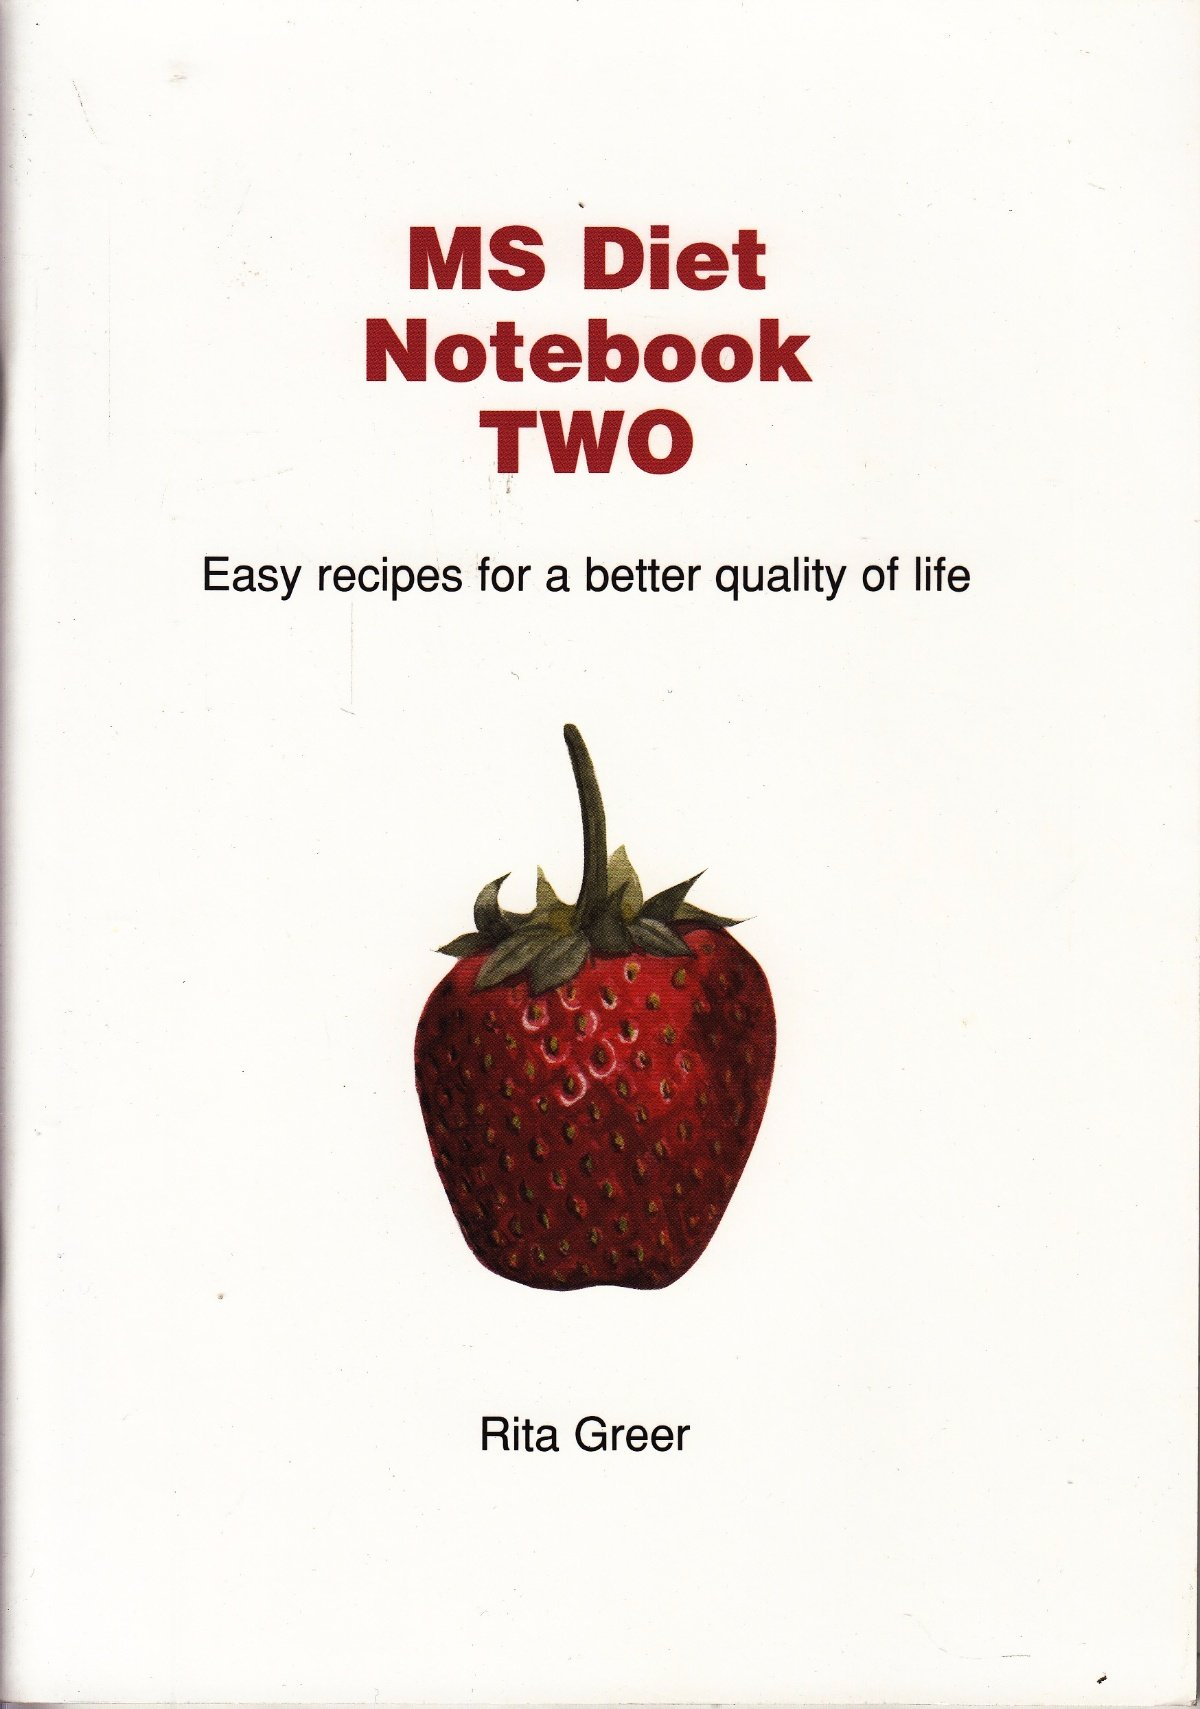 MS Diet Notebook: Information / Easy Recipies for a Better